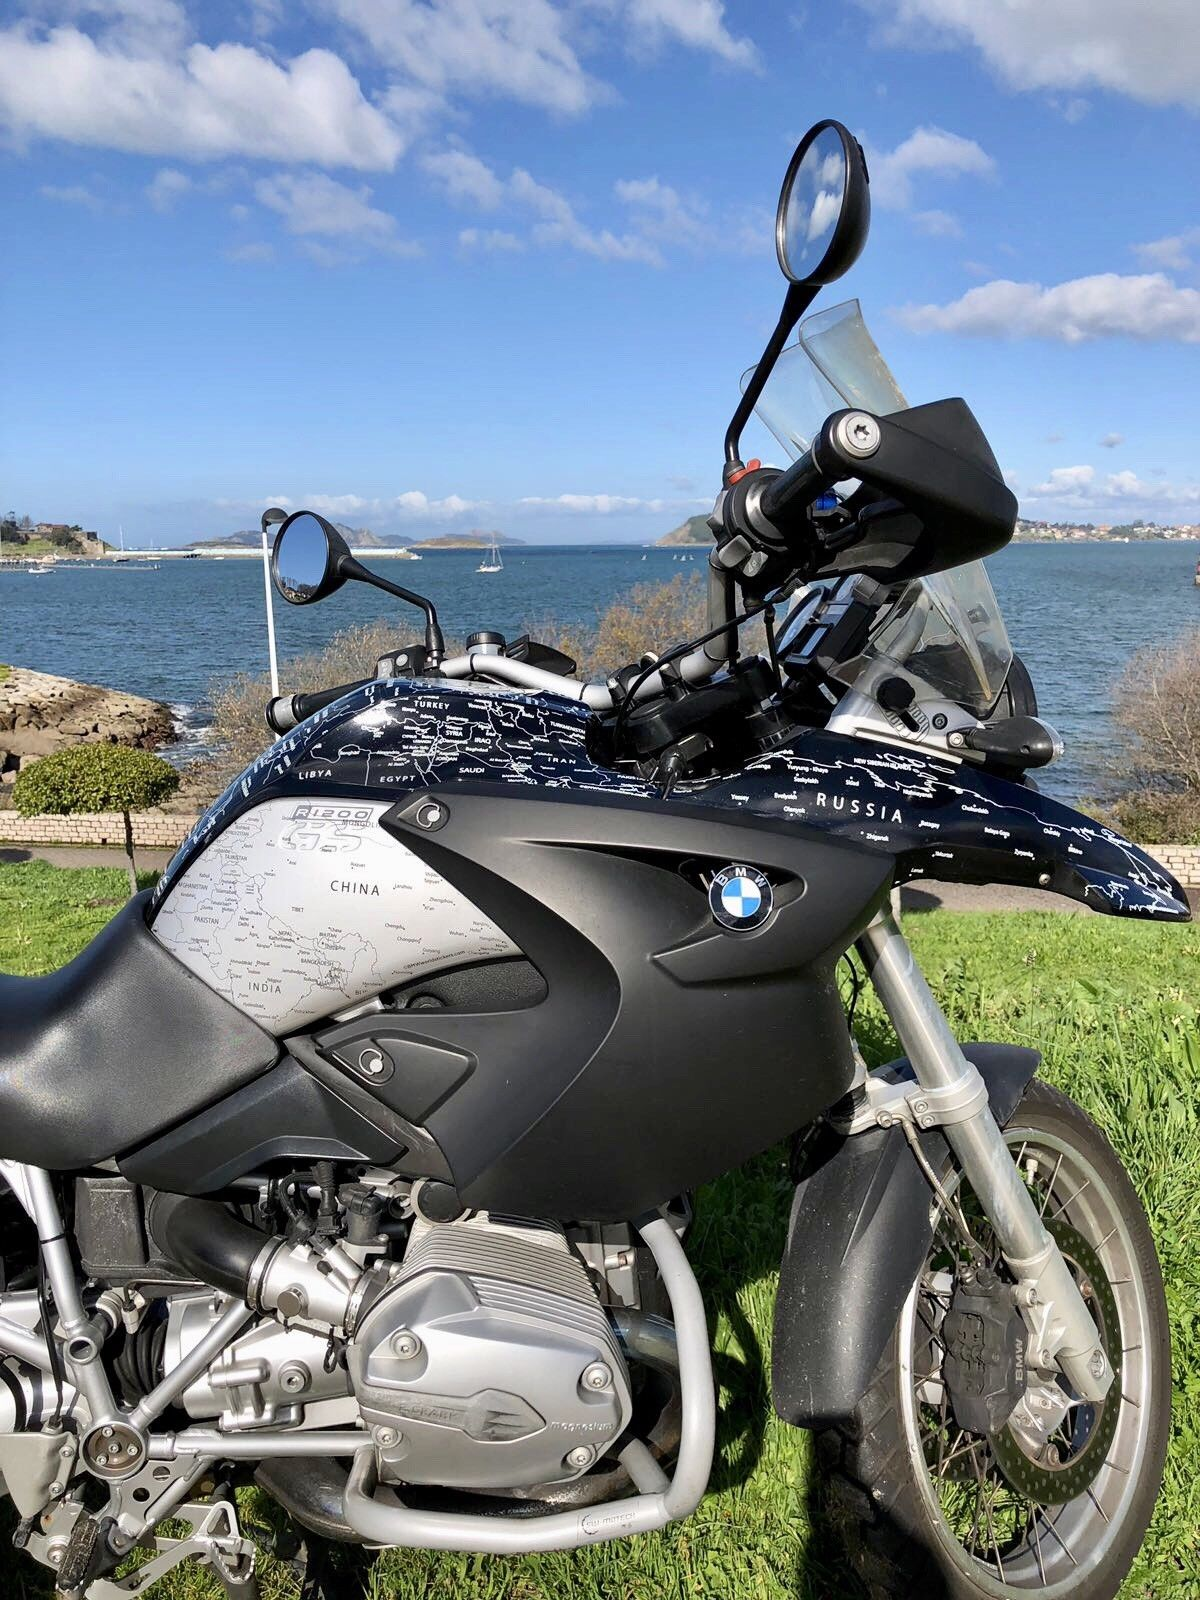 BMW R1200GS 2004 to 2007 World Stickers Full Set Black and Silver Side view.jpg